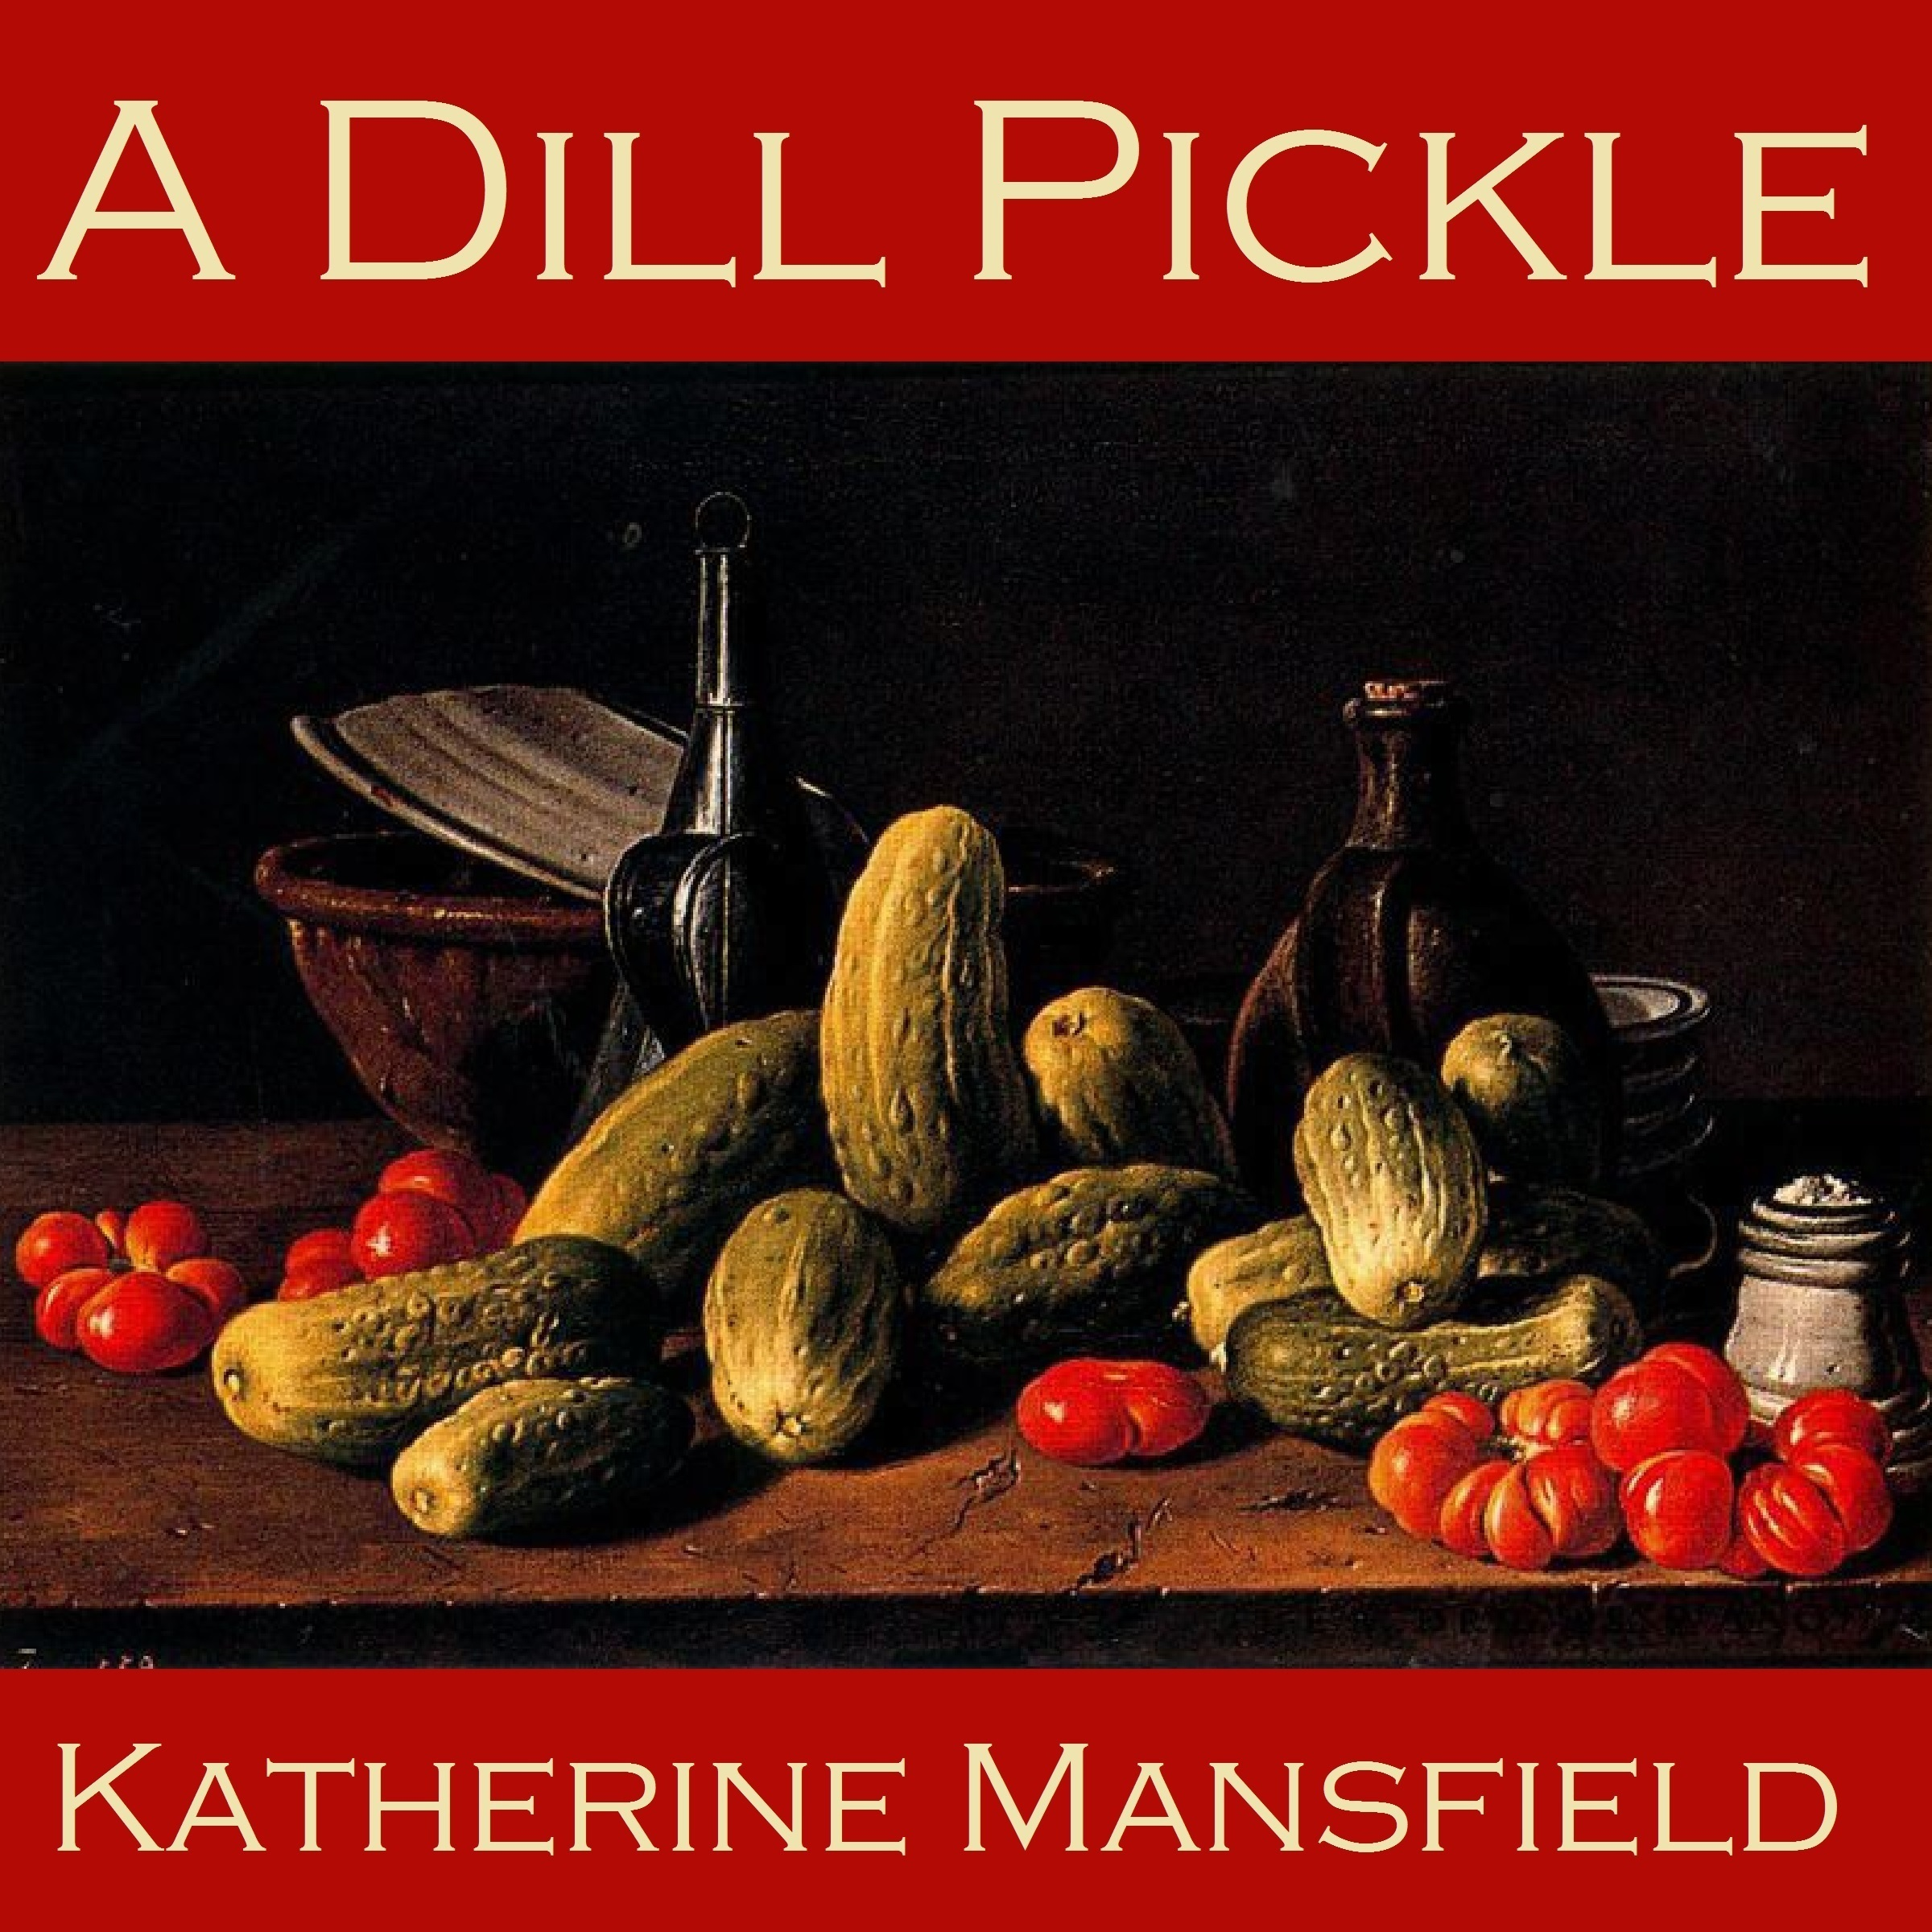 book review a dill pickle essay Would you want to join the league of pickle kirkus review our editors select the one author and one book they believe to be most worthy of your attention.